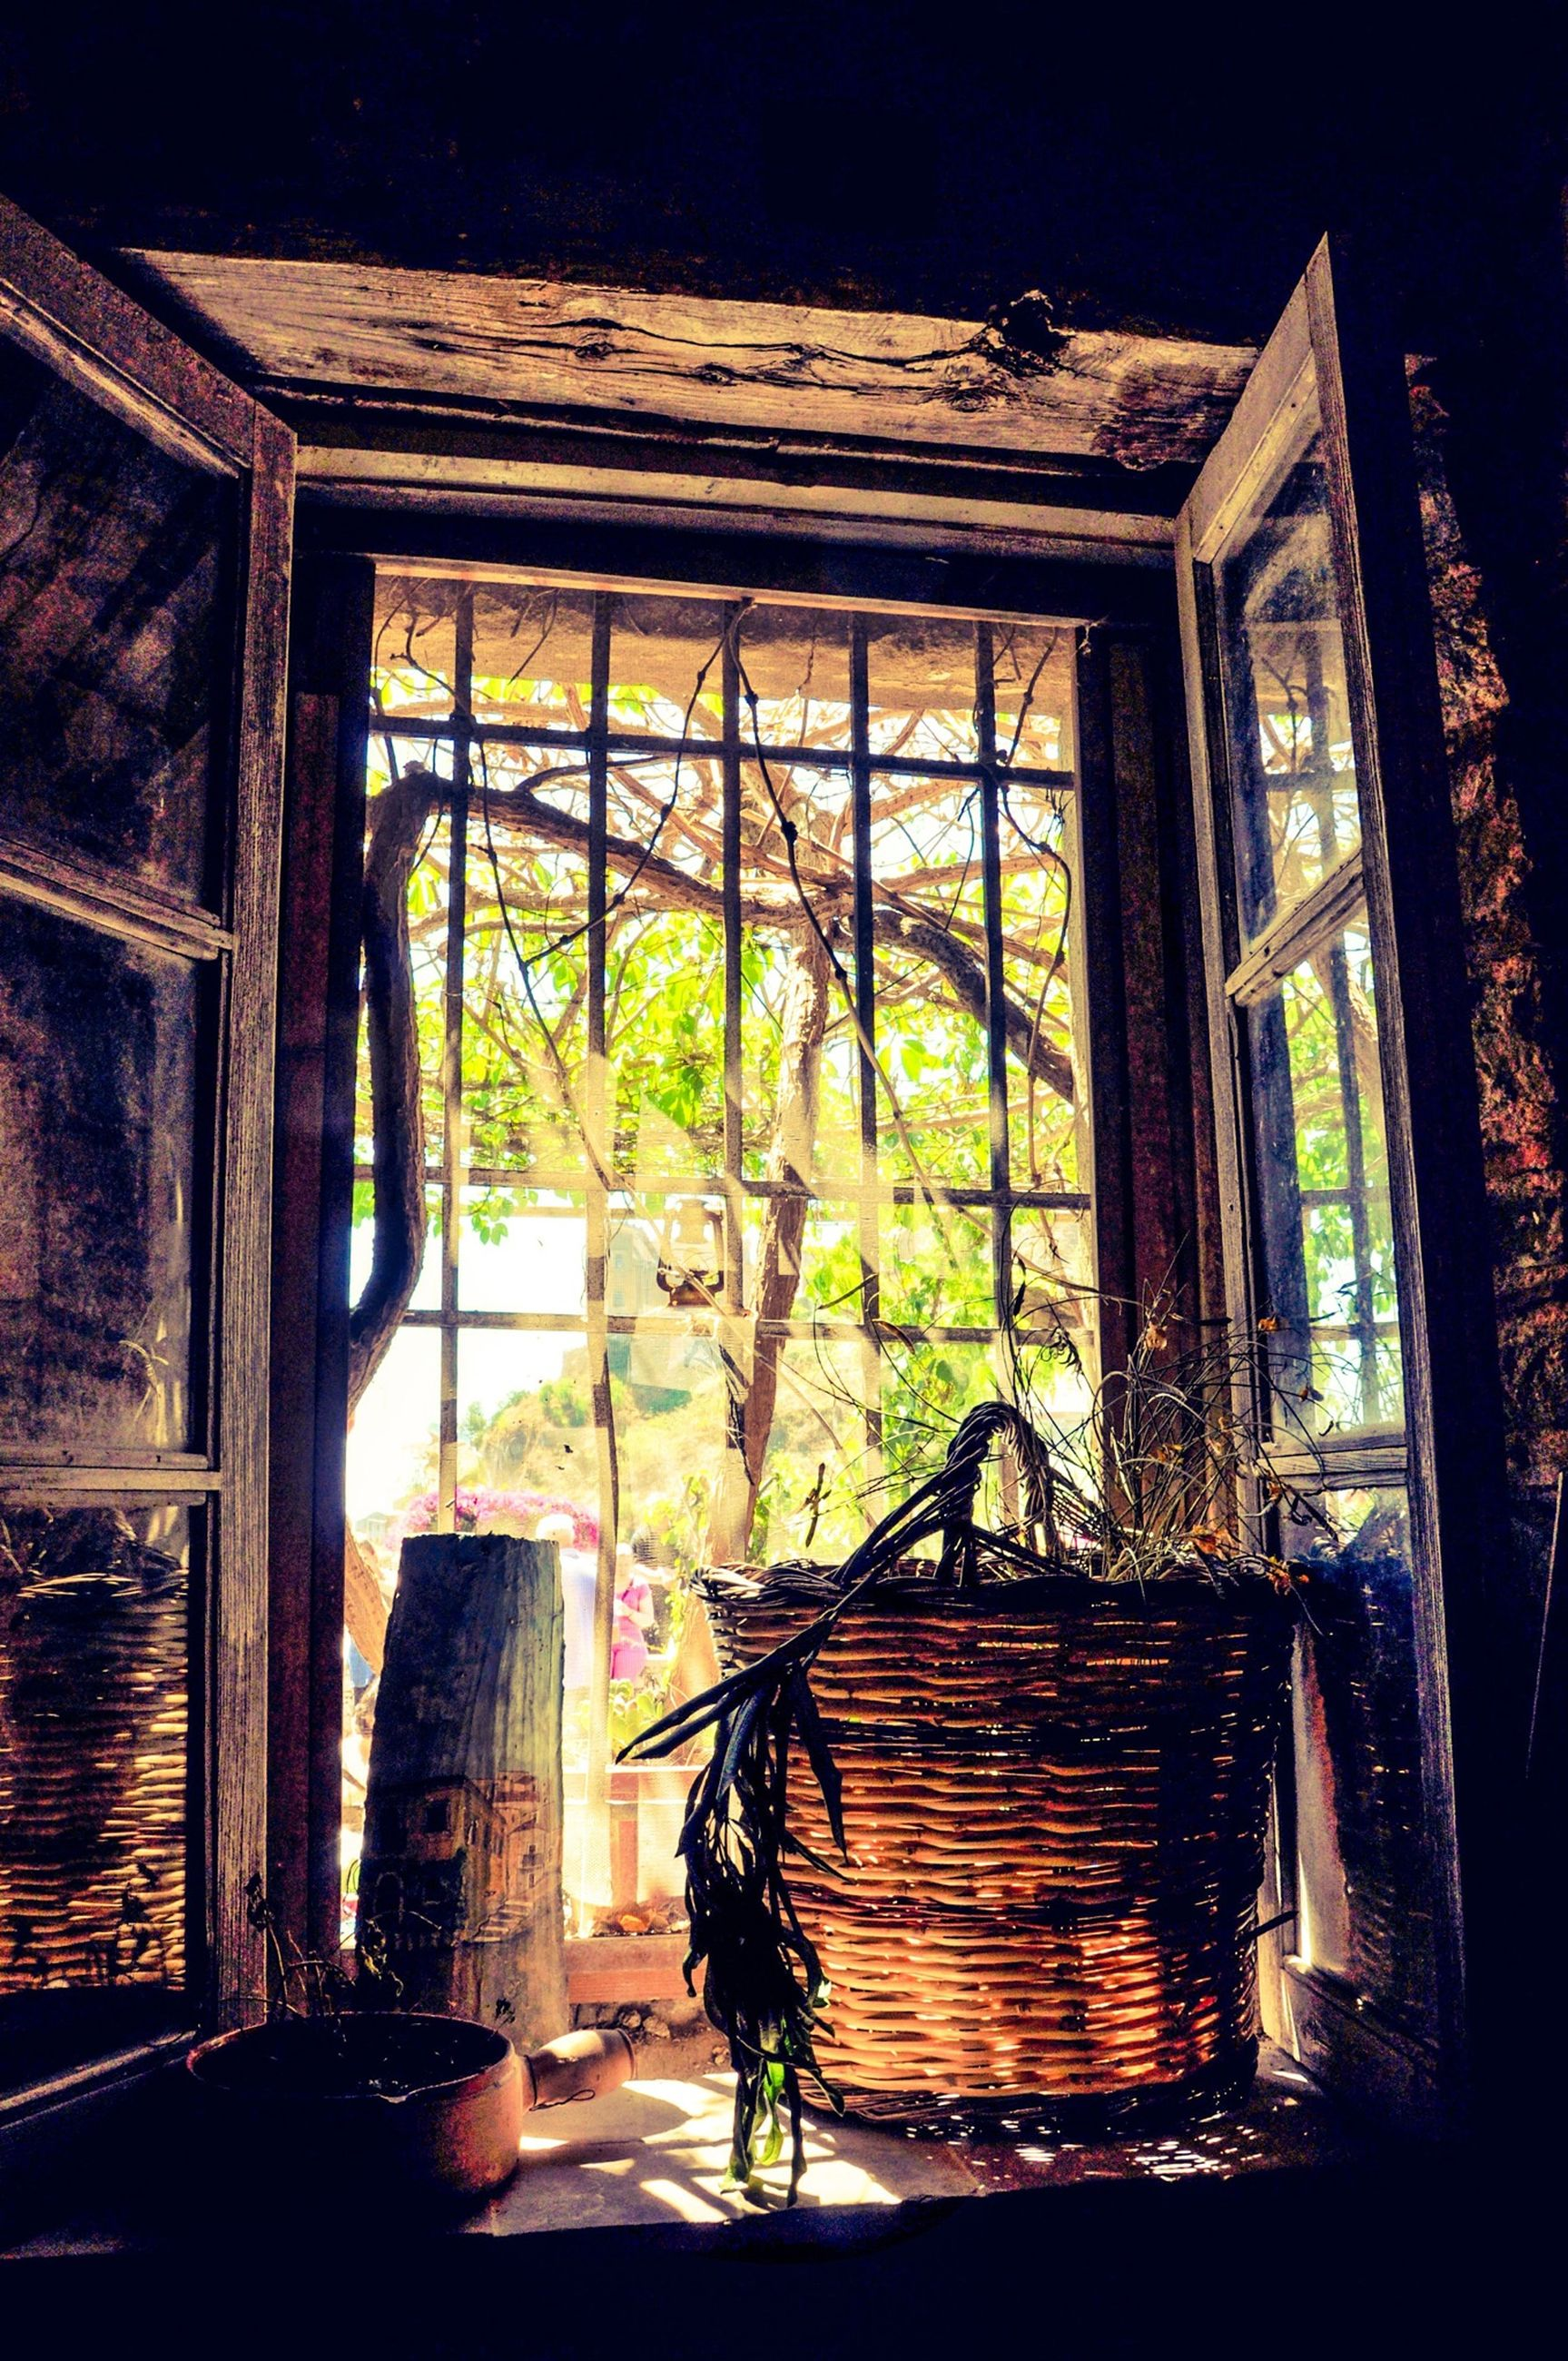 architecture, built structure, building exterior, window, house, indoors, residential structure, glass - material, wood - material, closed, abandoned, residential building, tree, building, door, no people, entrance, sunlight, old, day